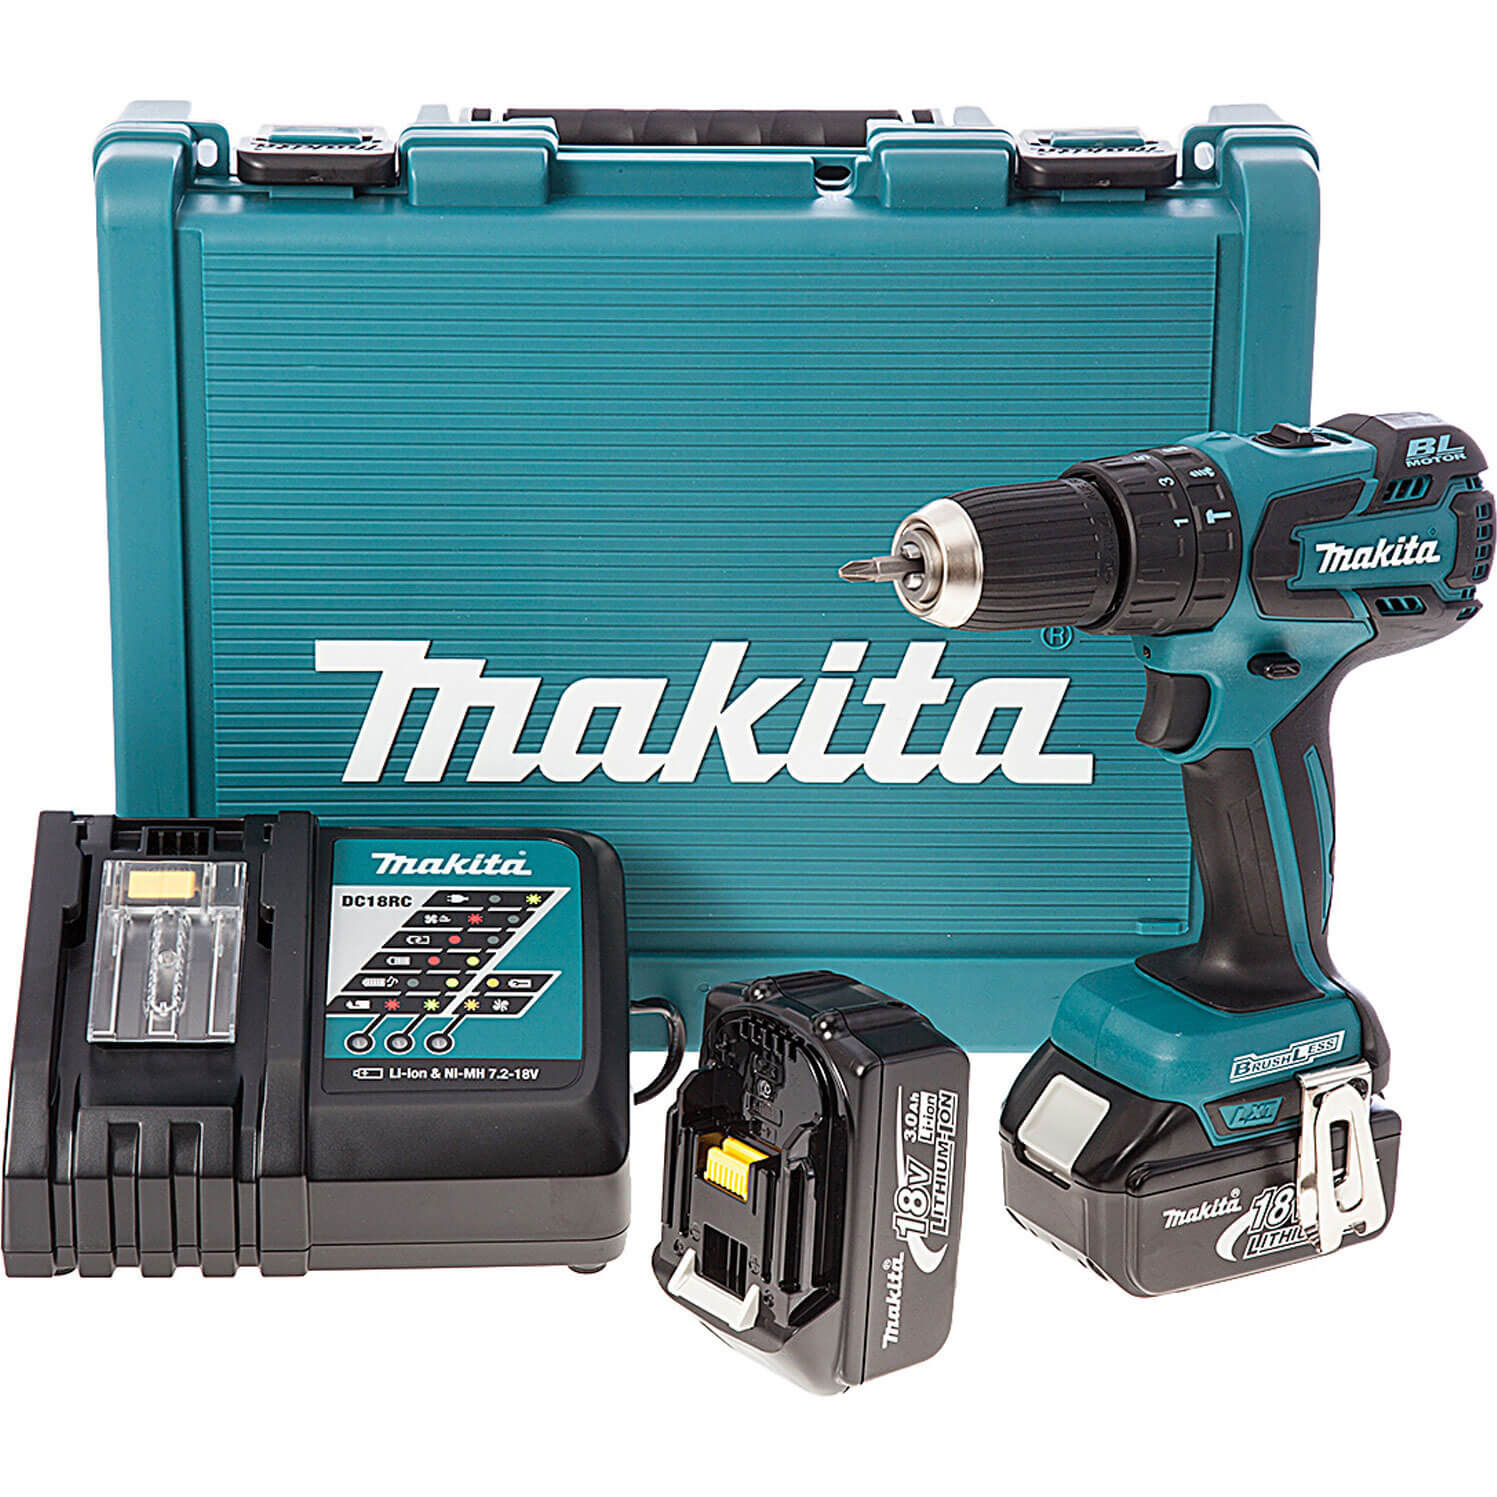 Image of Makita BHP459RFE 18v Cordless Brushless Combi Drill 2 Speed with 2 Lithium Ion Batteries 3ah